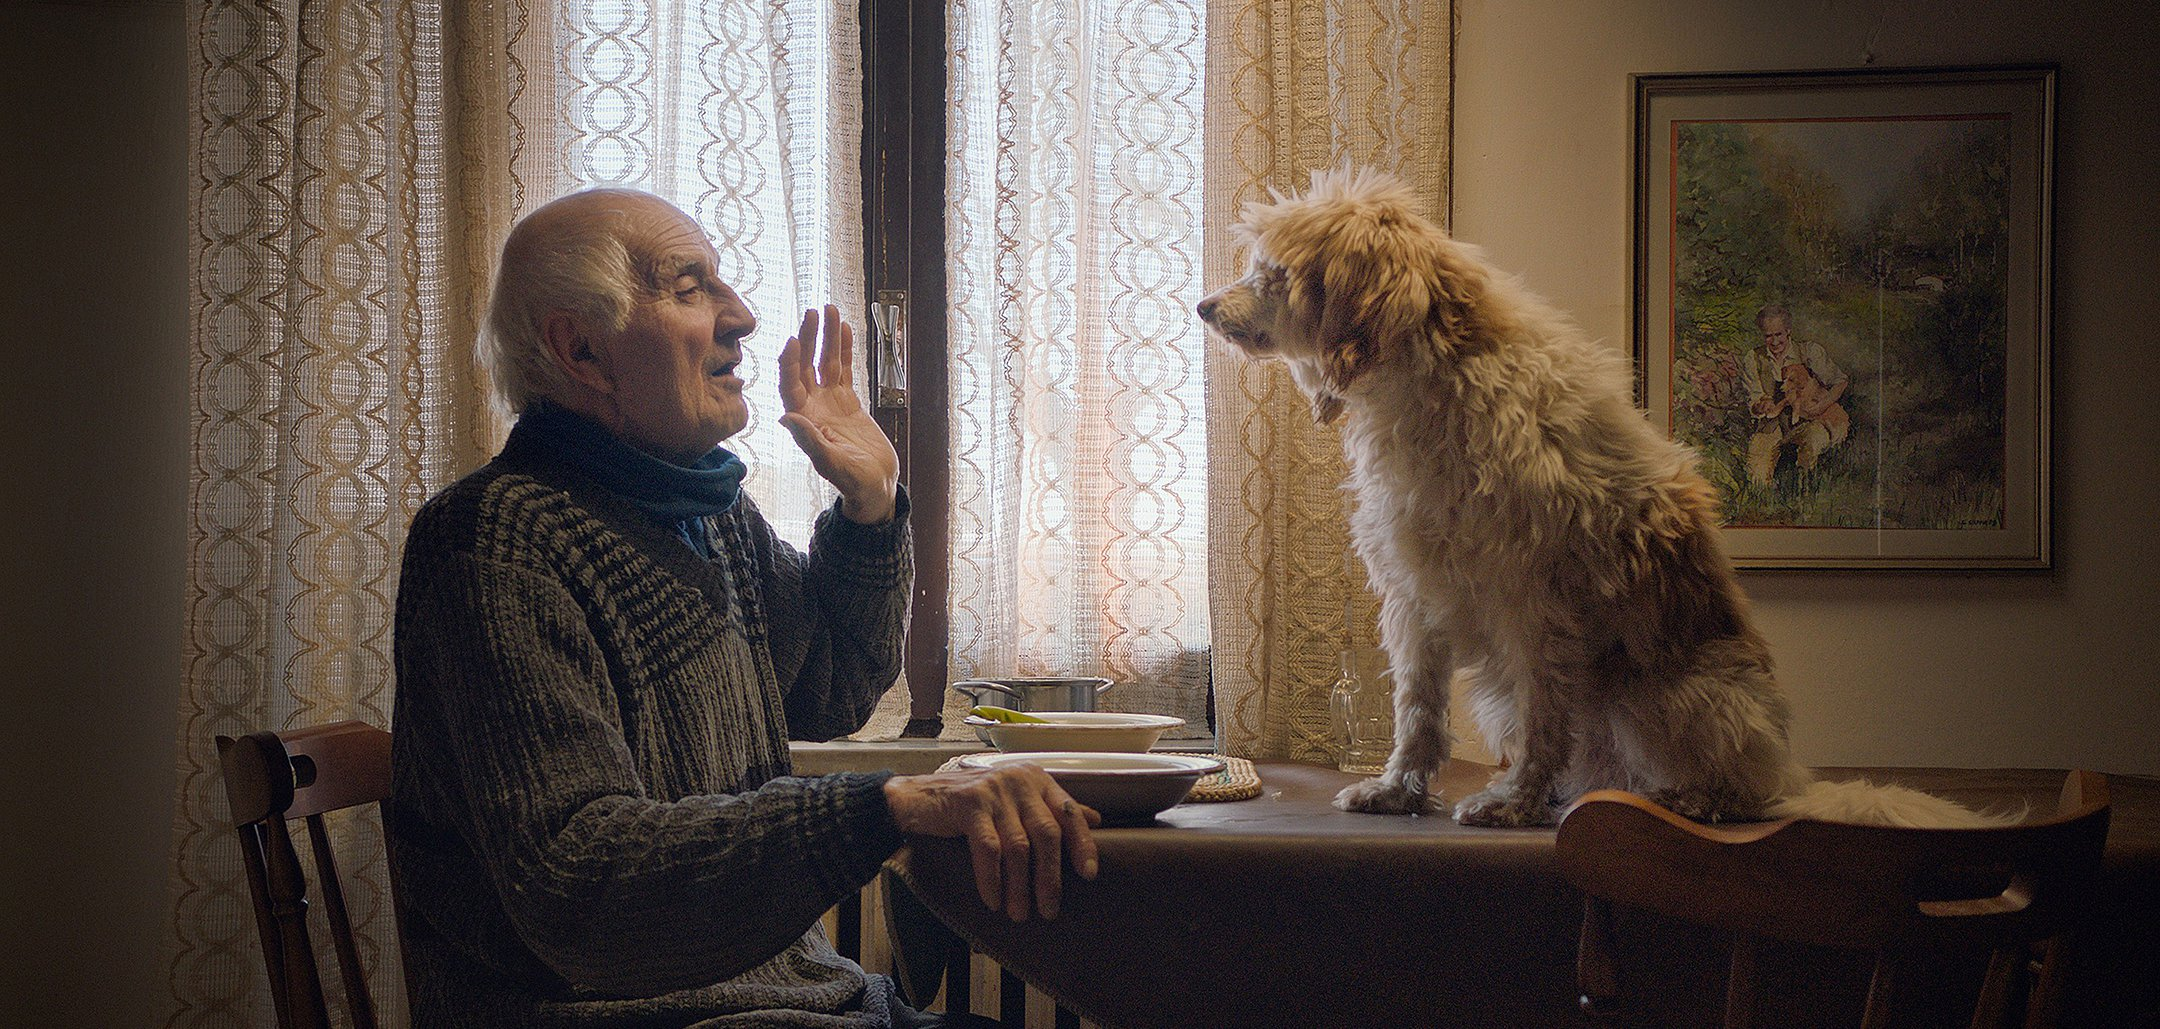 An elderly man gesticulating to a dog sitting on his kitchen table in a still from 'The Truffle Hunters' (2020)